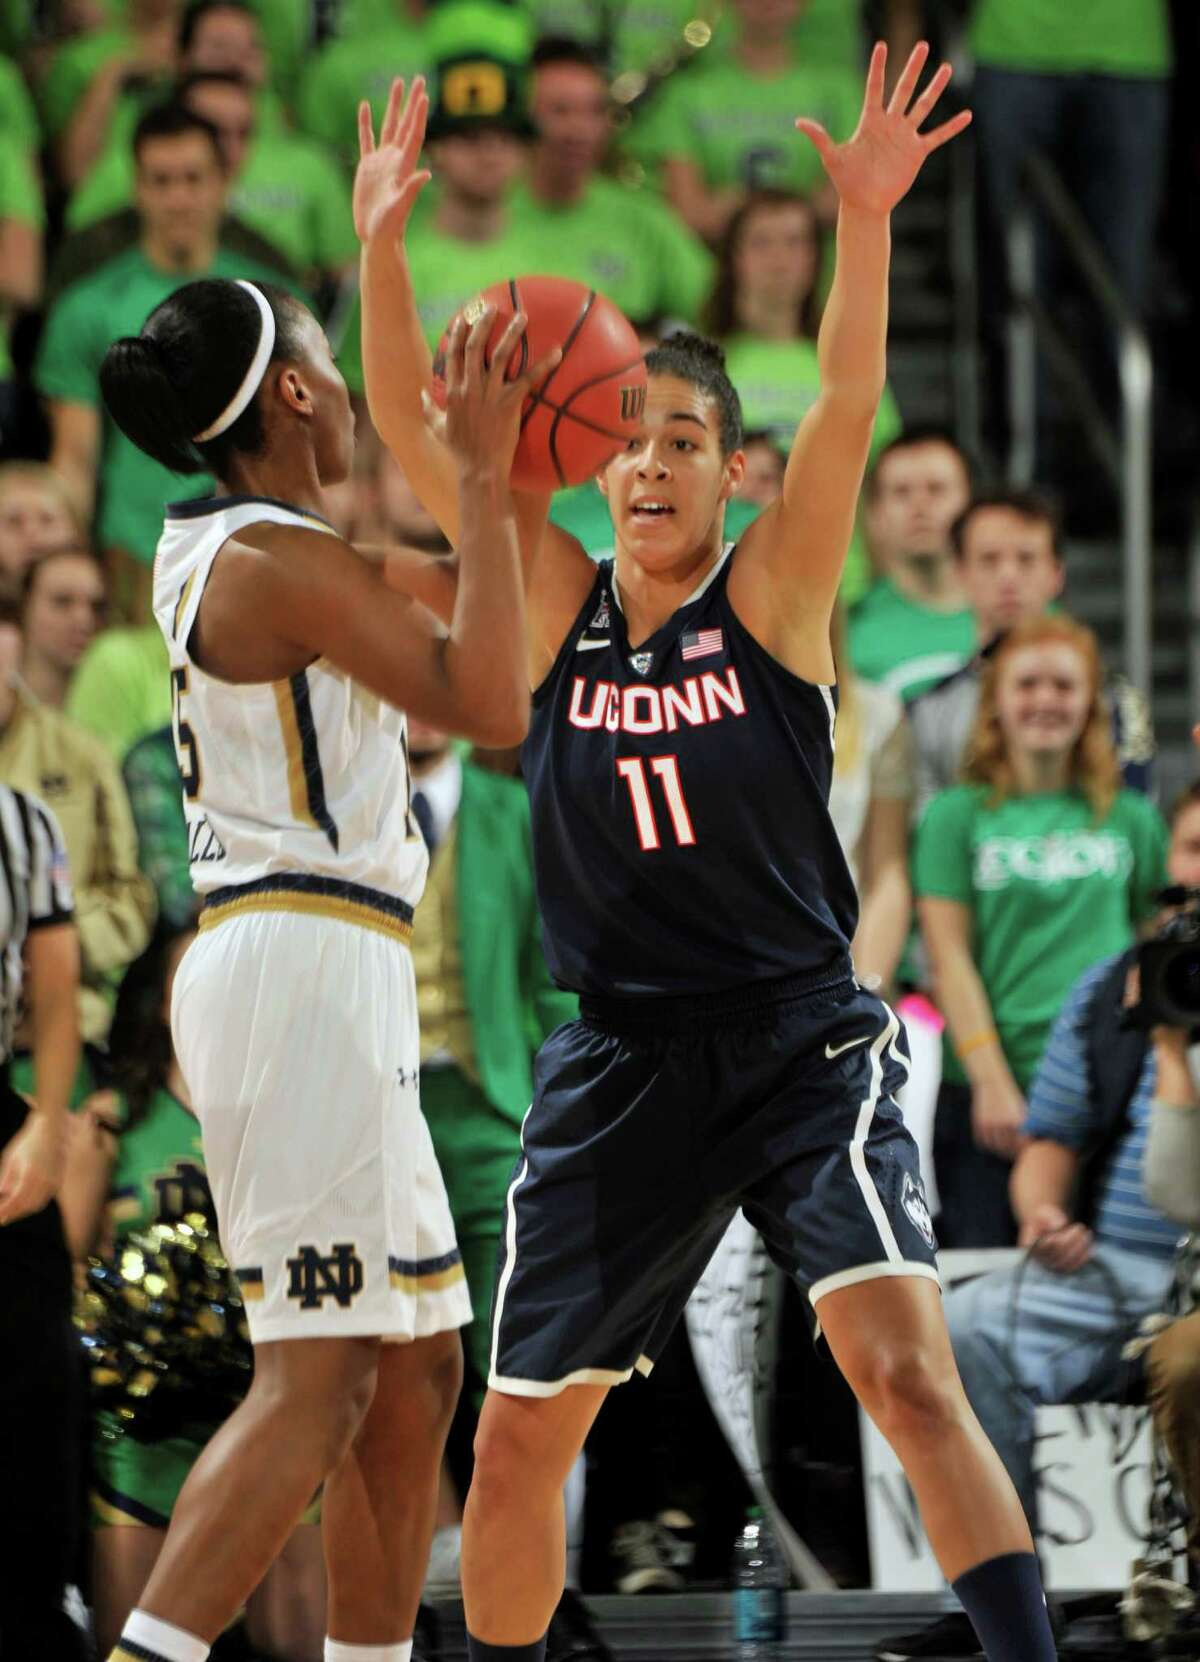 Notre Dame guard Lindsay Allen, left, throws a pass around Connecticut guard Kia Nurse in the first half of an NCAA college basketball game, Saturday Dec. 6, 2014, in South Bend, Ind.